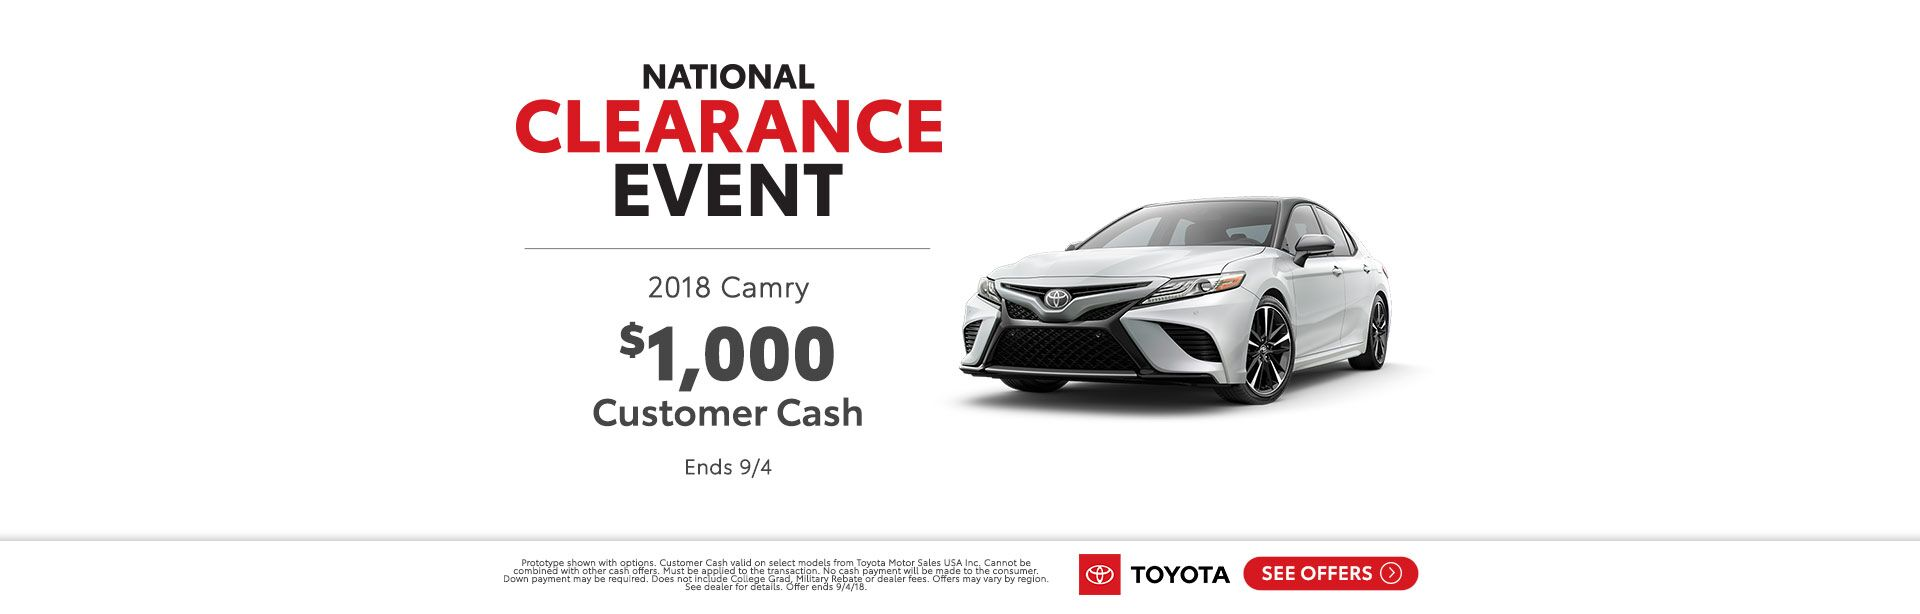 Camry Cashback National Clearance Event 2018